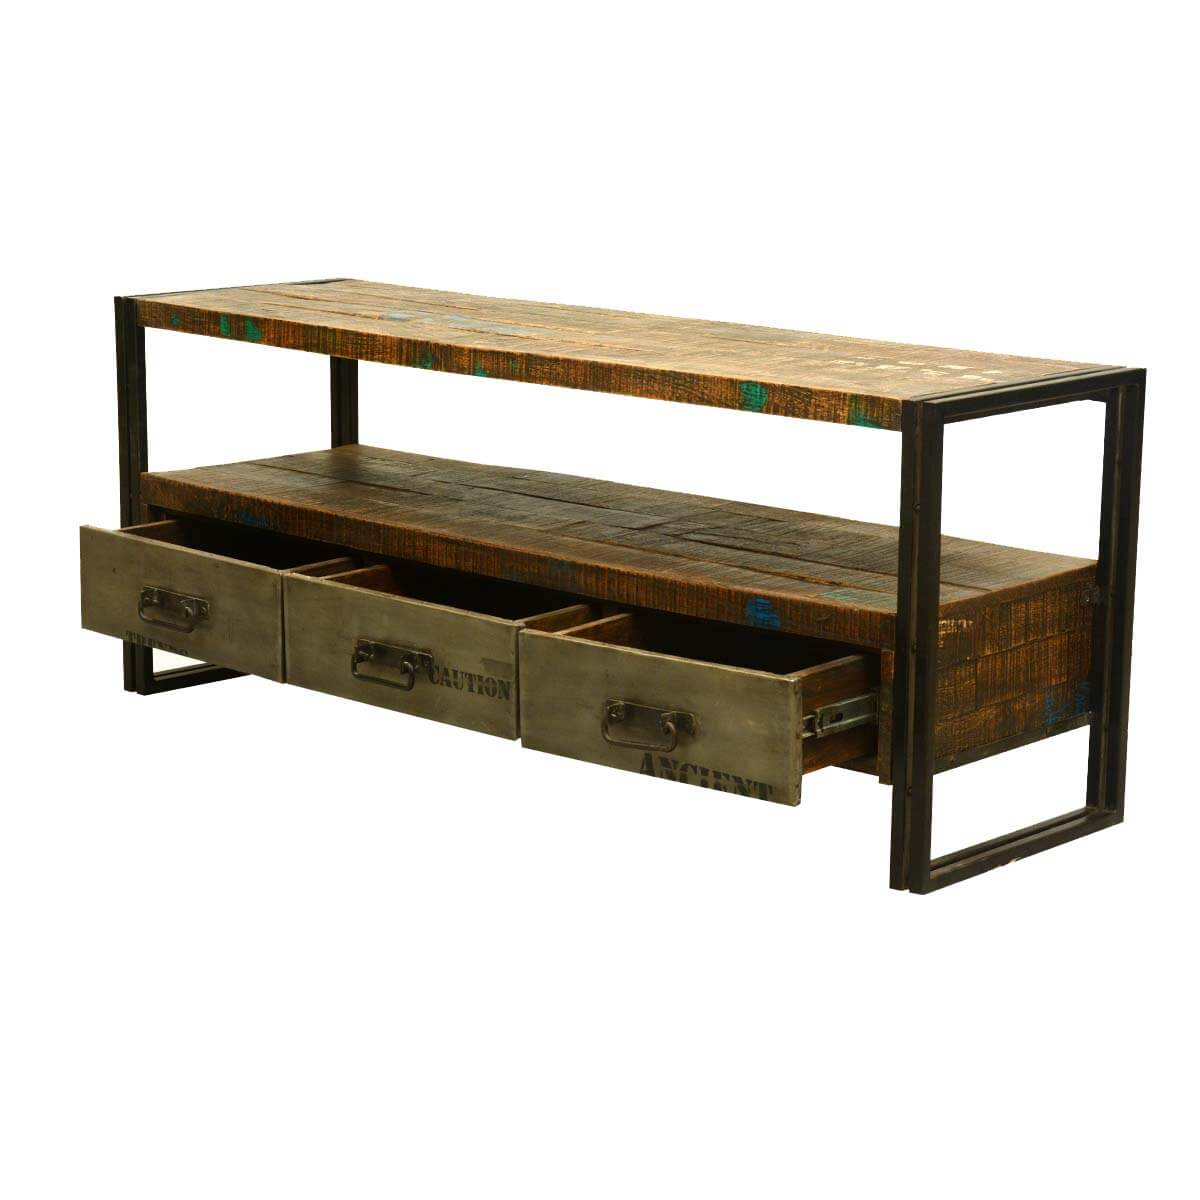 Sierra Living Concepts Rustic Solid Wood Furniture And